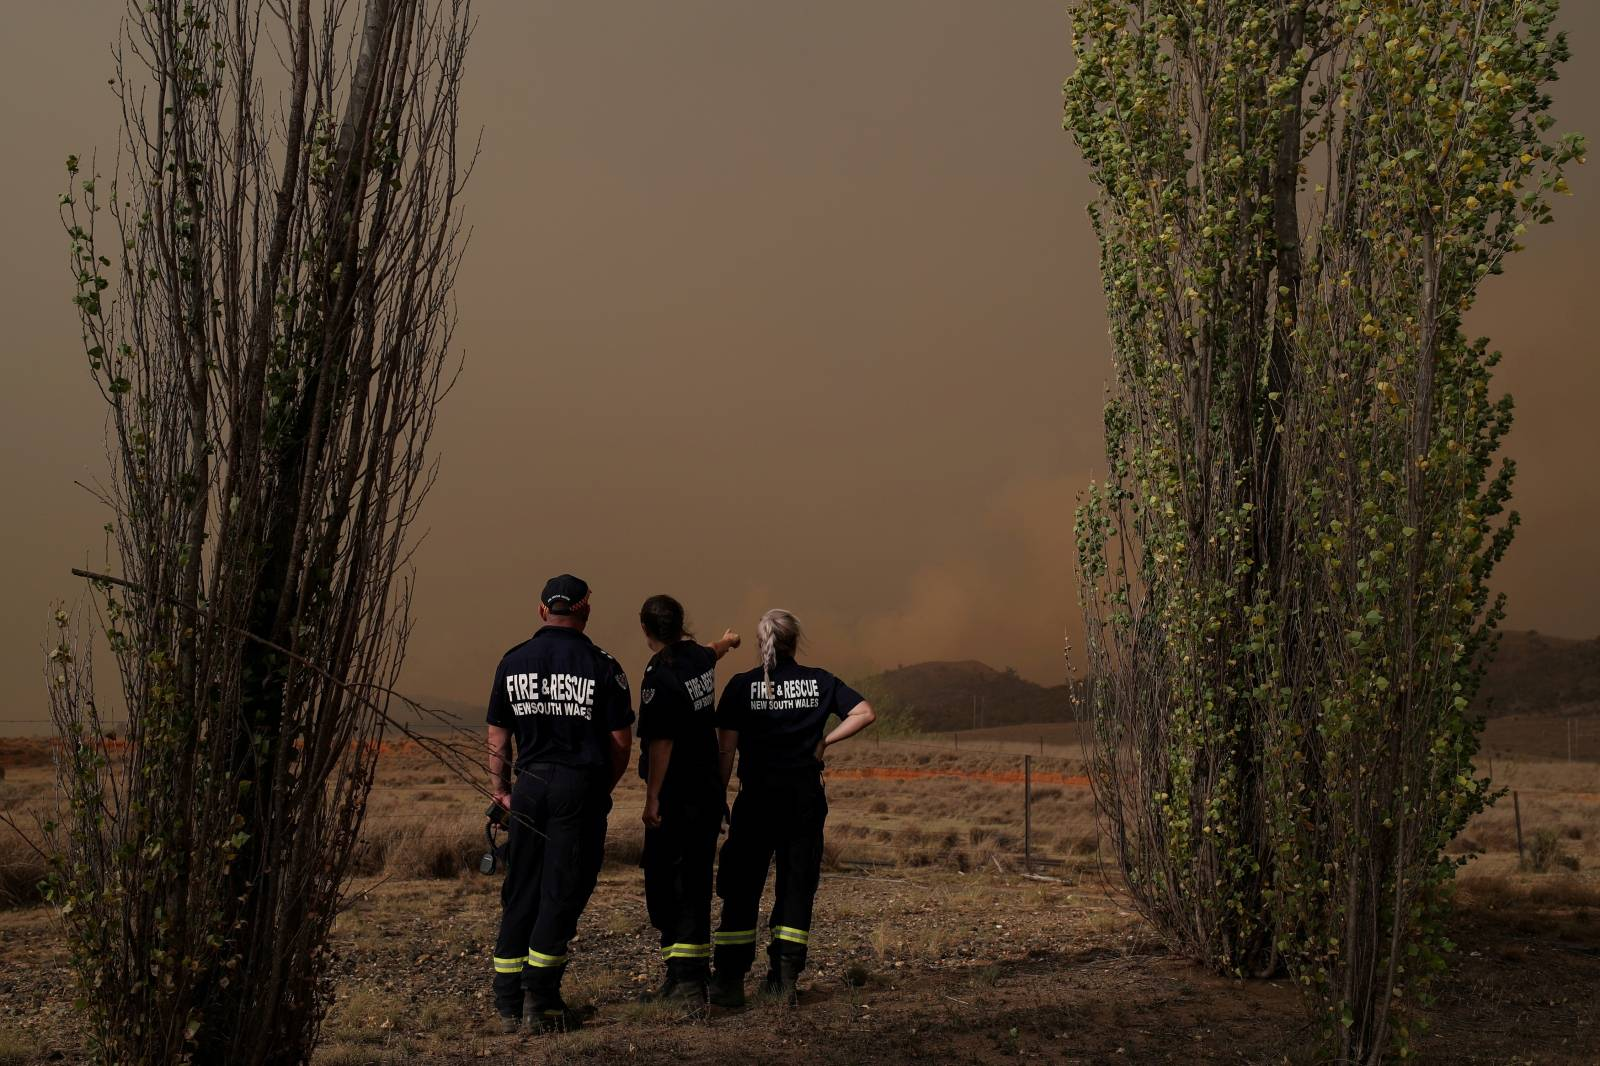 Personnel from Fire and Rescue NSW monitor a bushfire as it approaches a home in Bredbo